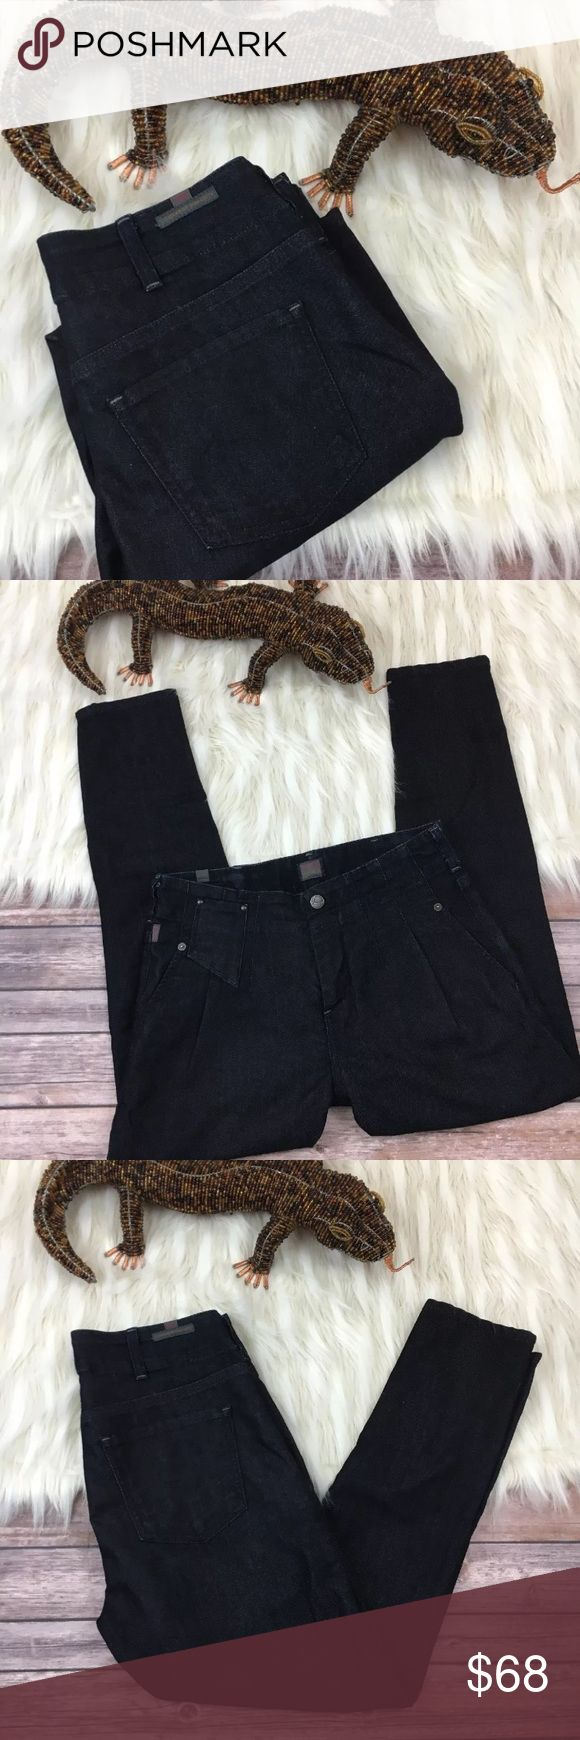 """Citizen Of Humanity Slim Trousers Jeans Size 26 🔸Citizen Of Humanity Womens Keaton Pleated Slim Trousers In Studio Size 26 🔸 inseam 26 1/2"""" 🔸waist measured 27"""" 🔸EUC-NO FLAWS 🔸questions welcomed 🔸reasonable offers always accepted 🔸price reduction & combined shipping available on bundles🔸as seen in pictures 🔸thank you for shopping with thrifty_nerd 🔸SKU A1 Citizens Of Humanity Jeans"""